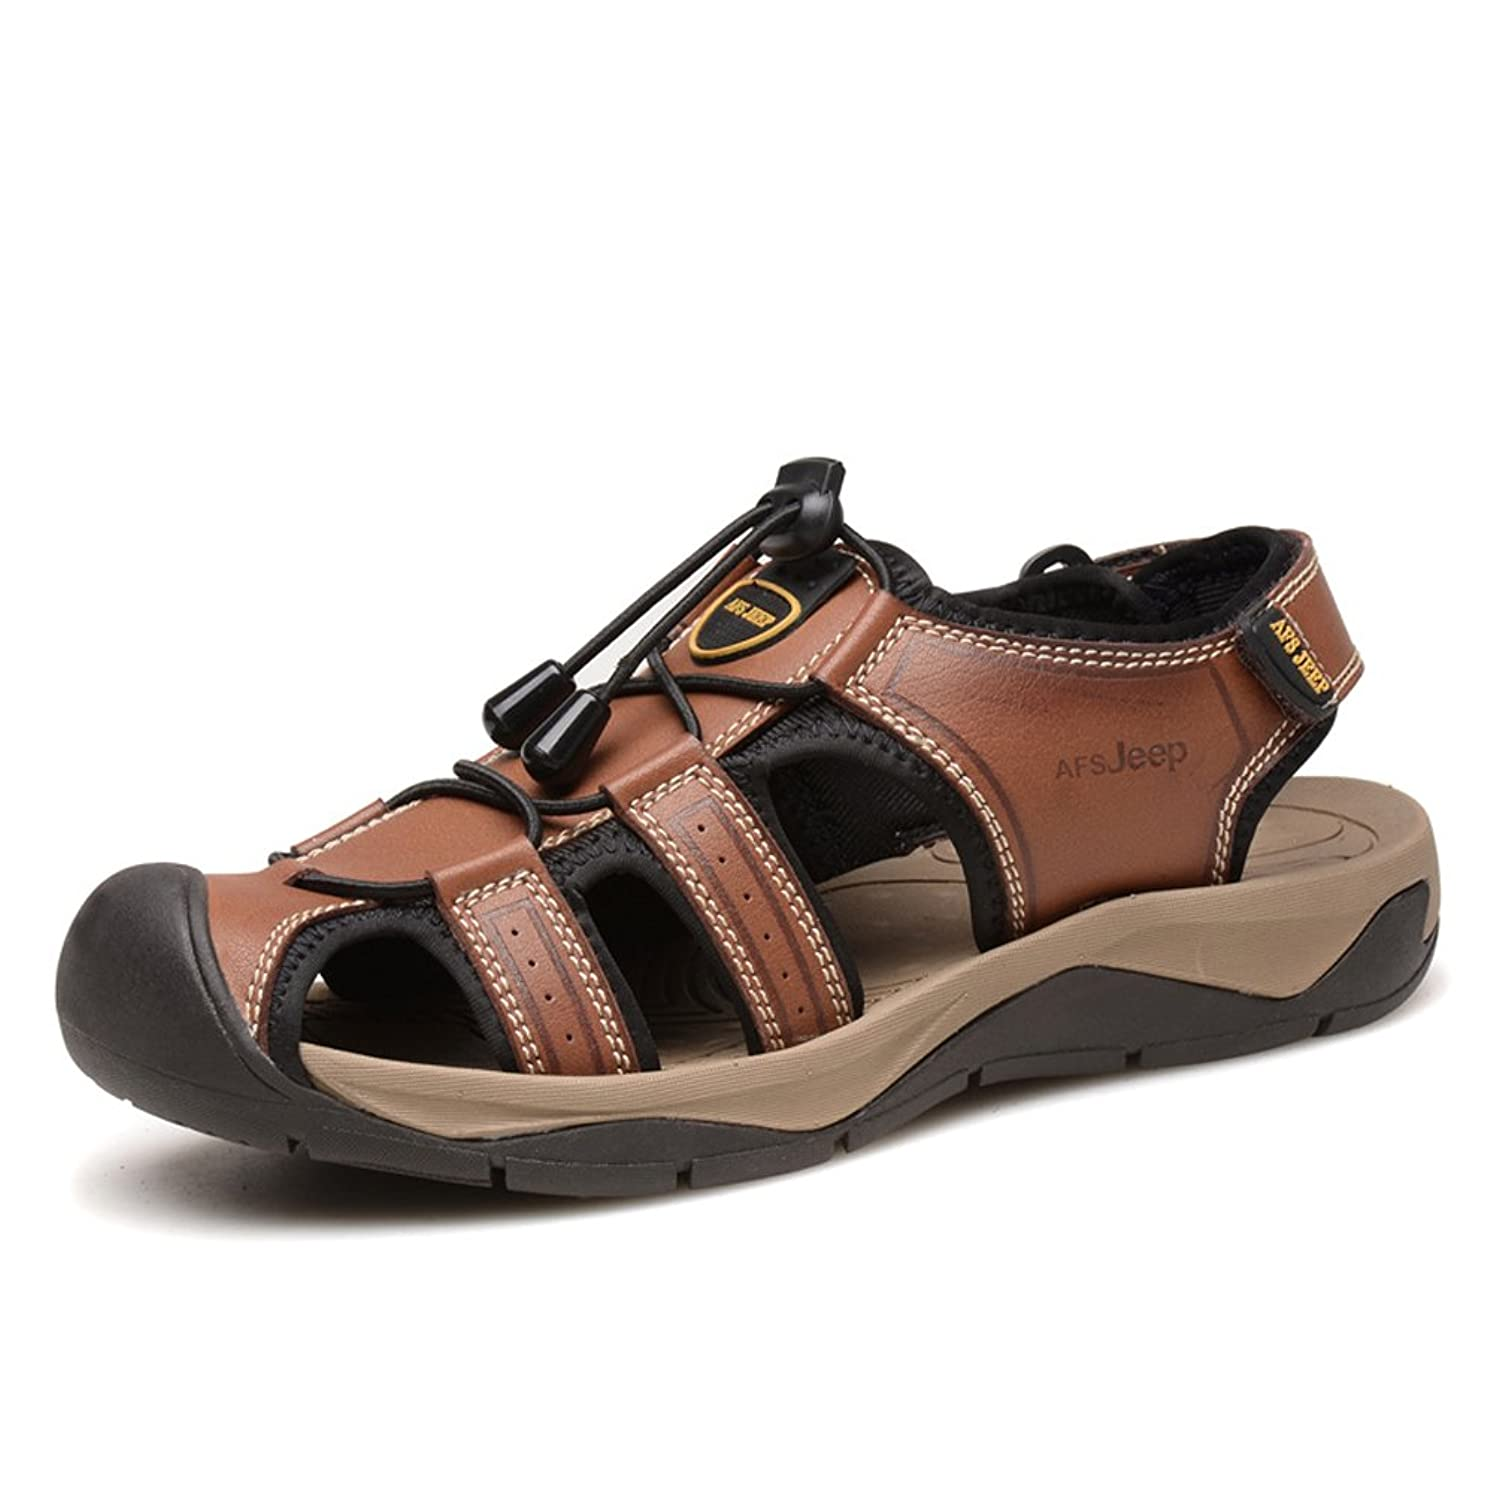 AFS JEEP Men's Strap Sport Sandals Close Toe Beach Athletic Boating Shoes A3944 Brown EU44